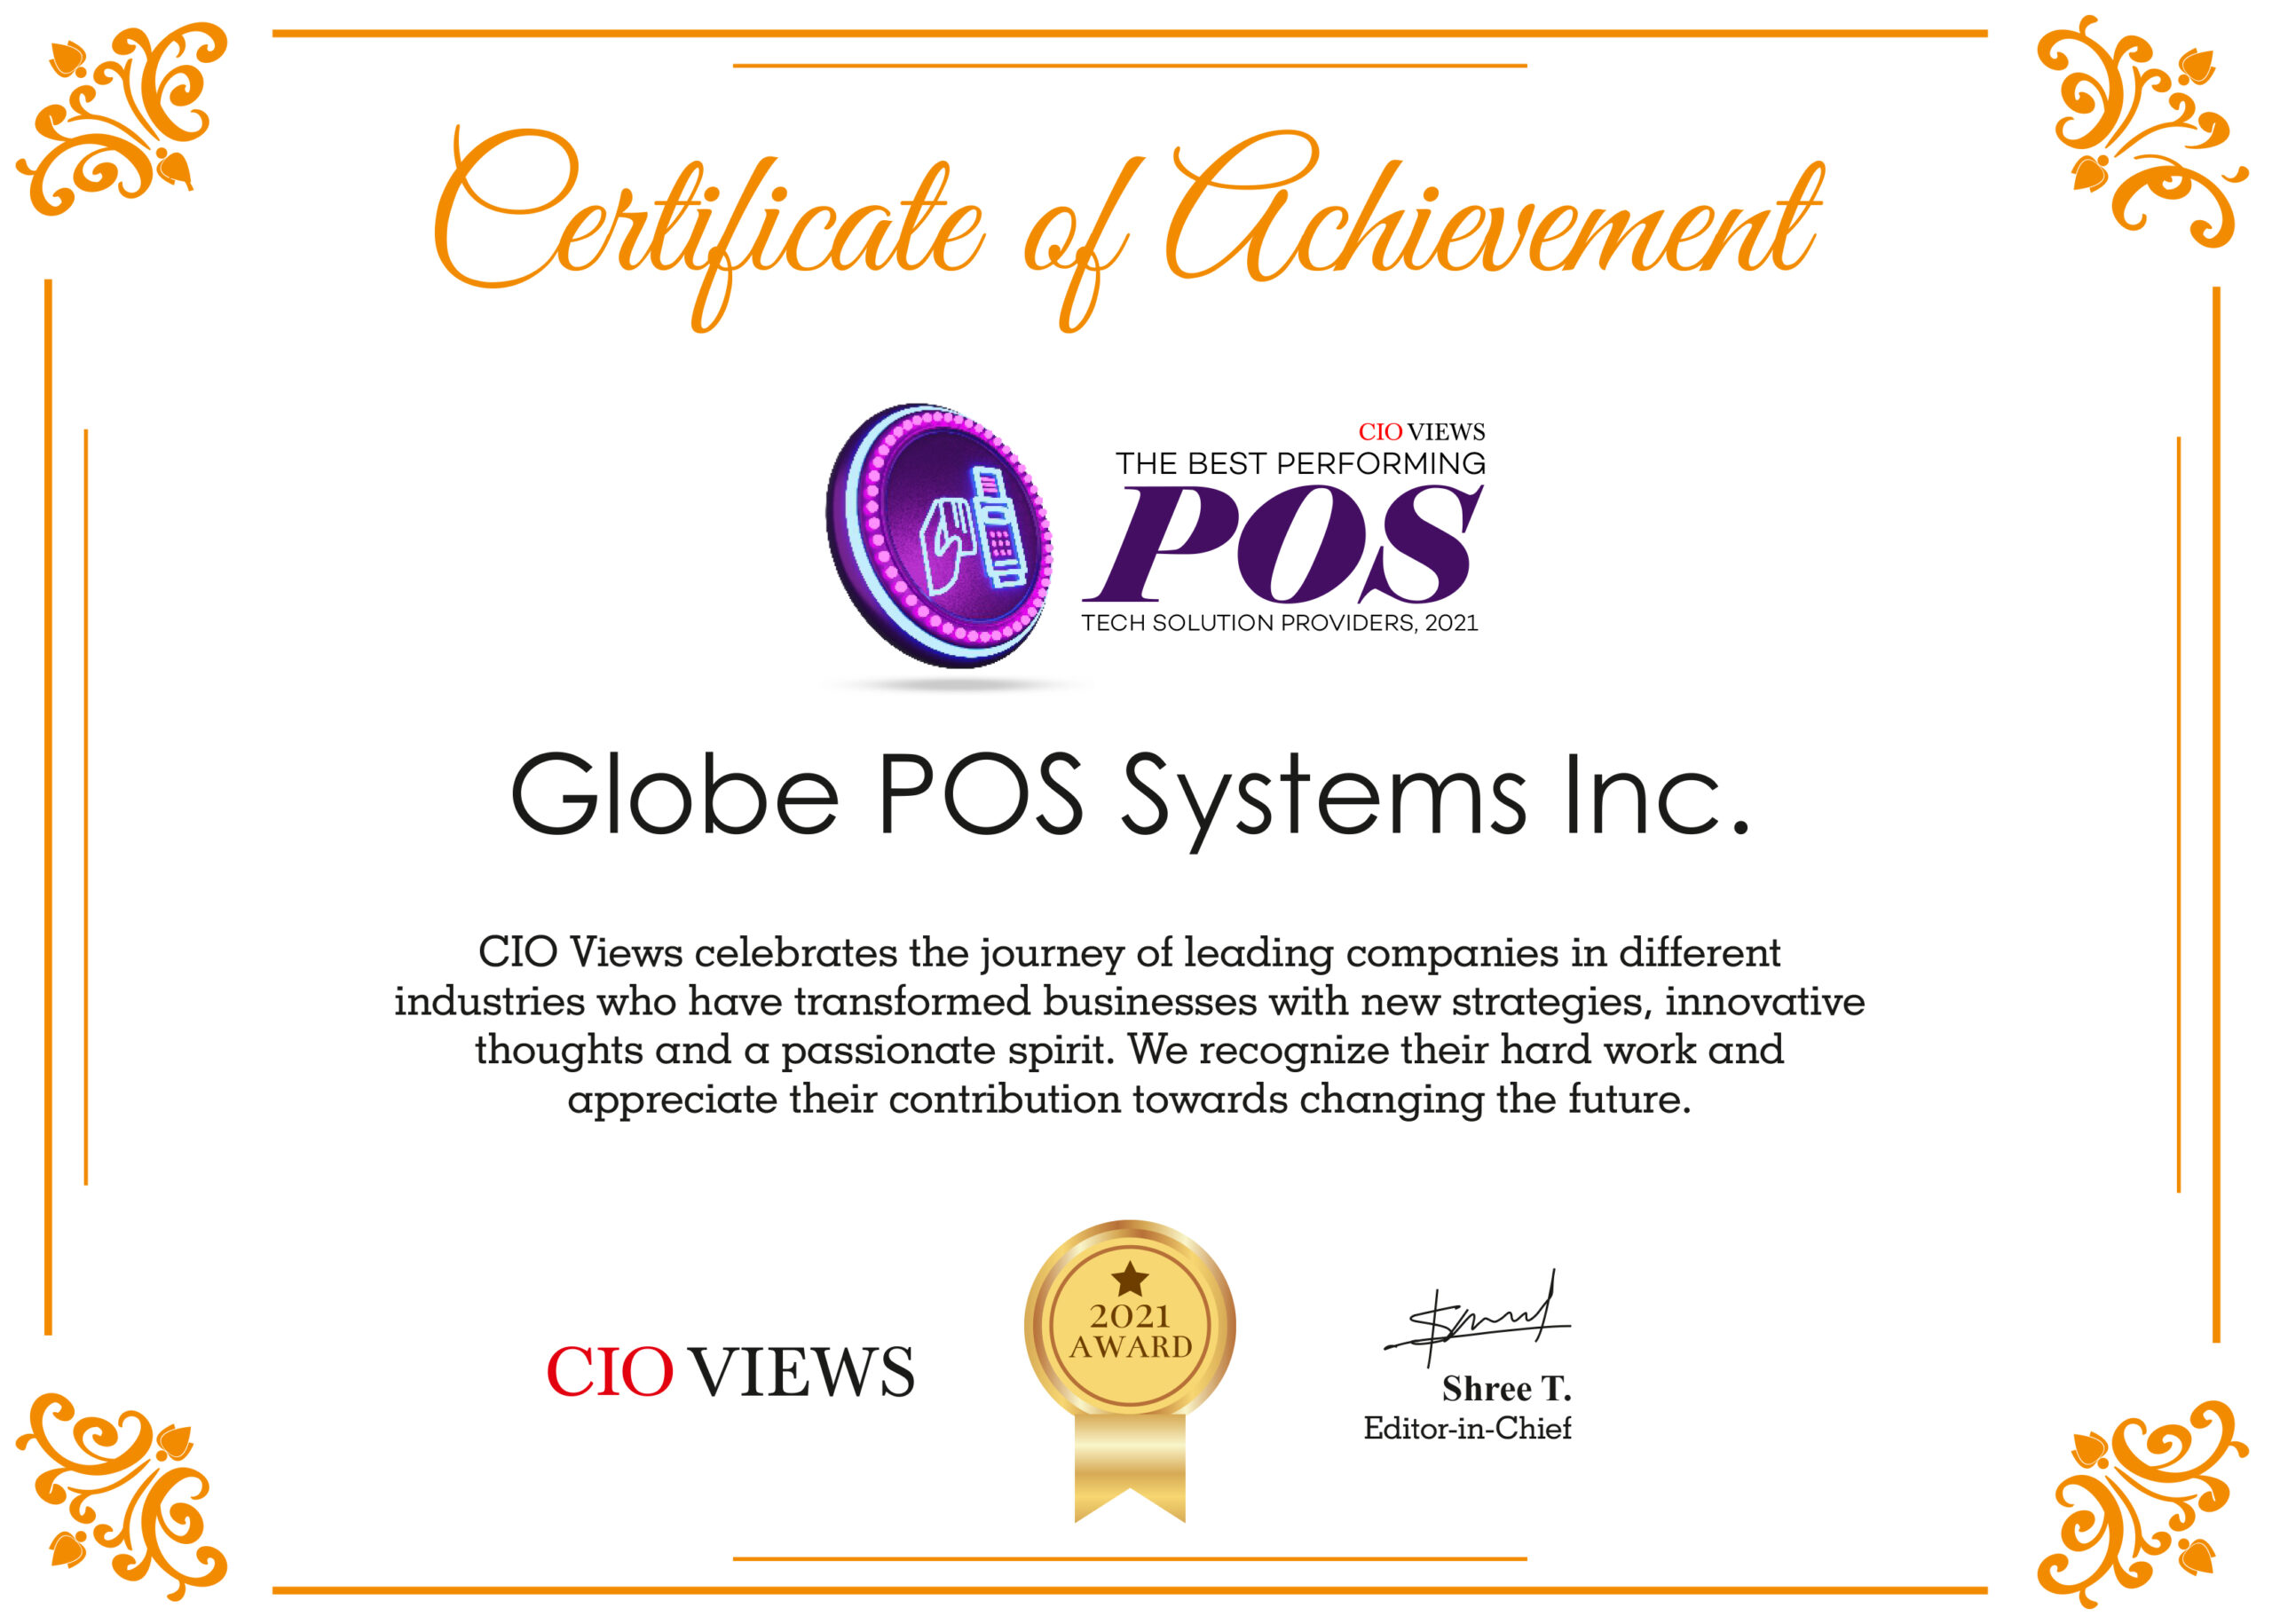 The Best Performing POS Tech Solution Providers